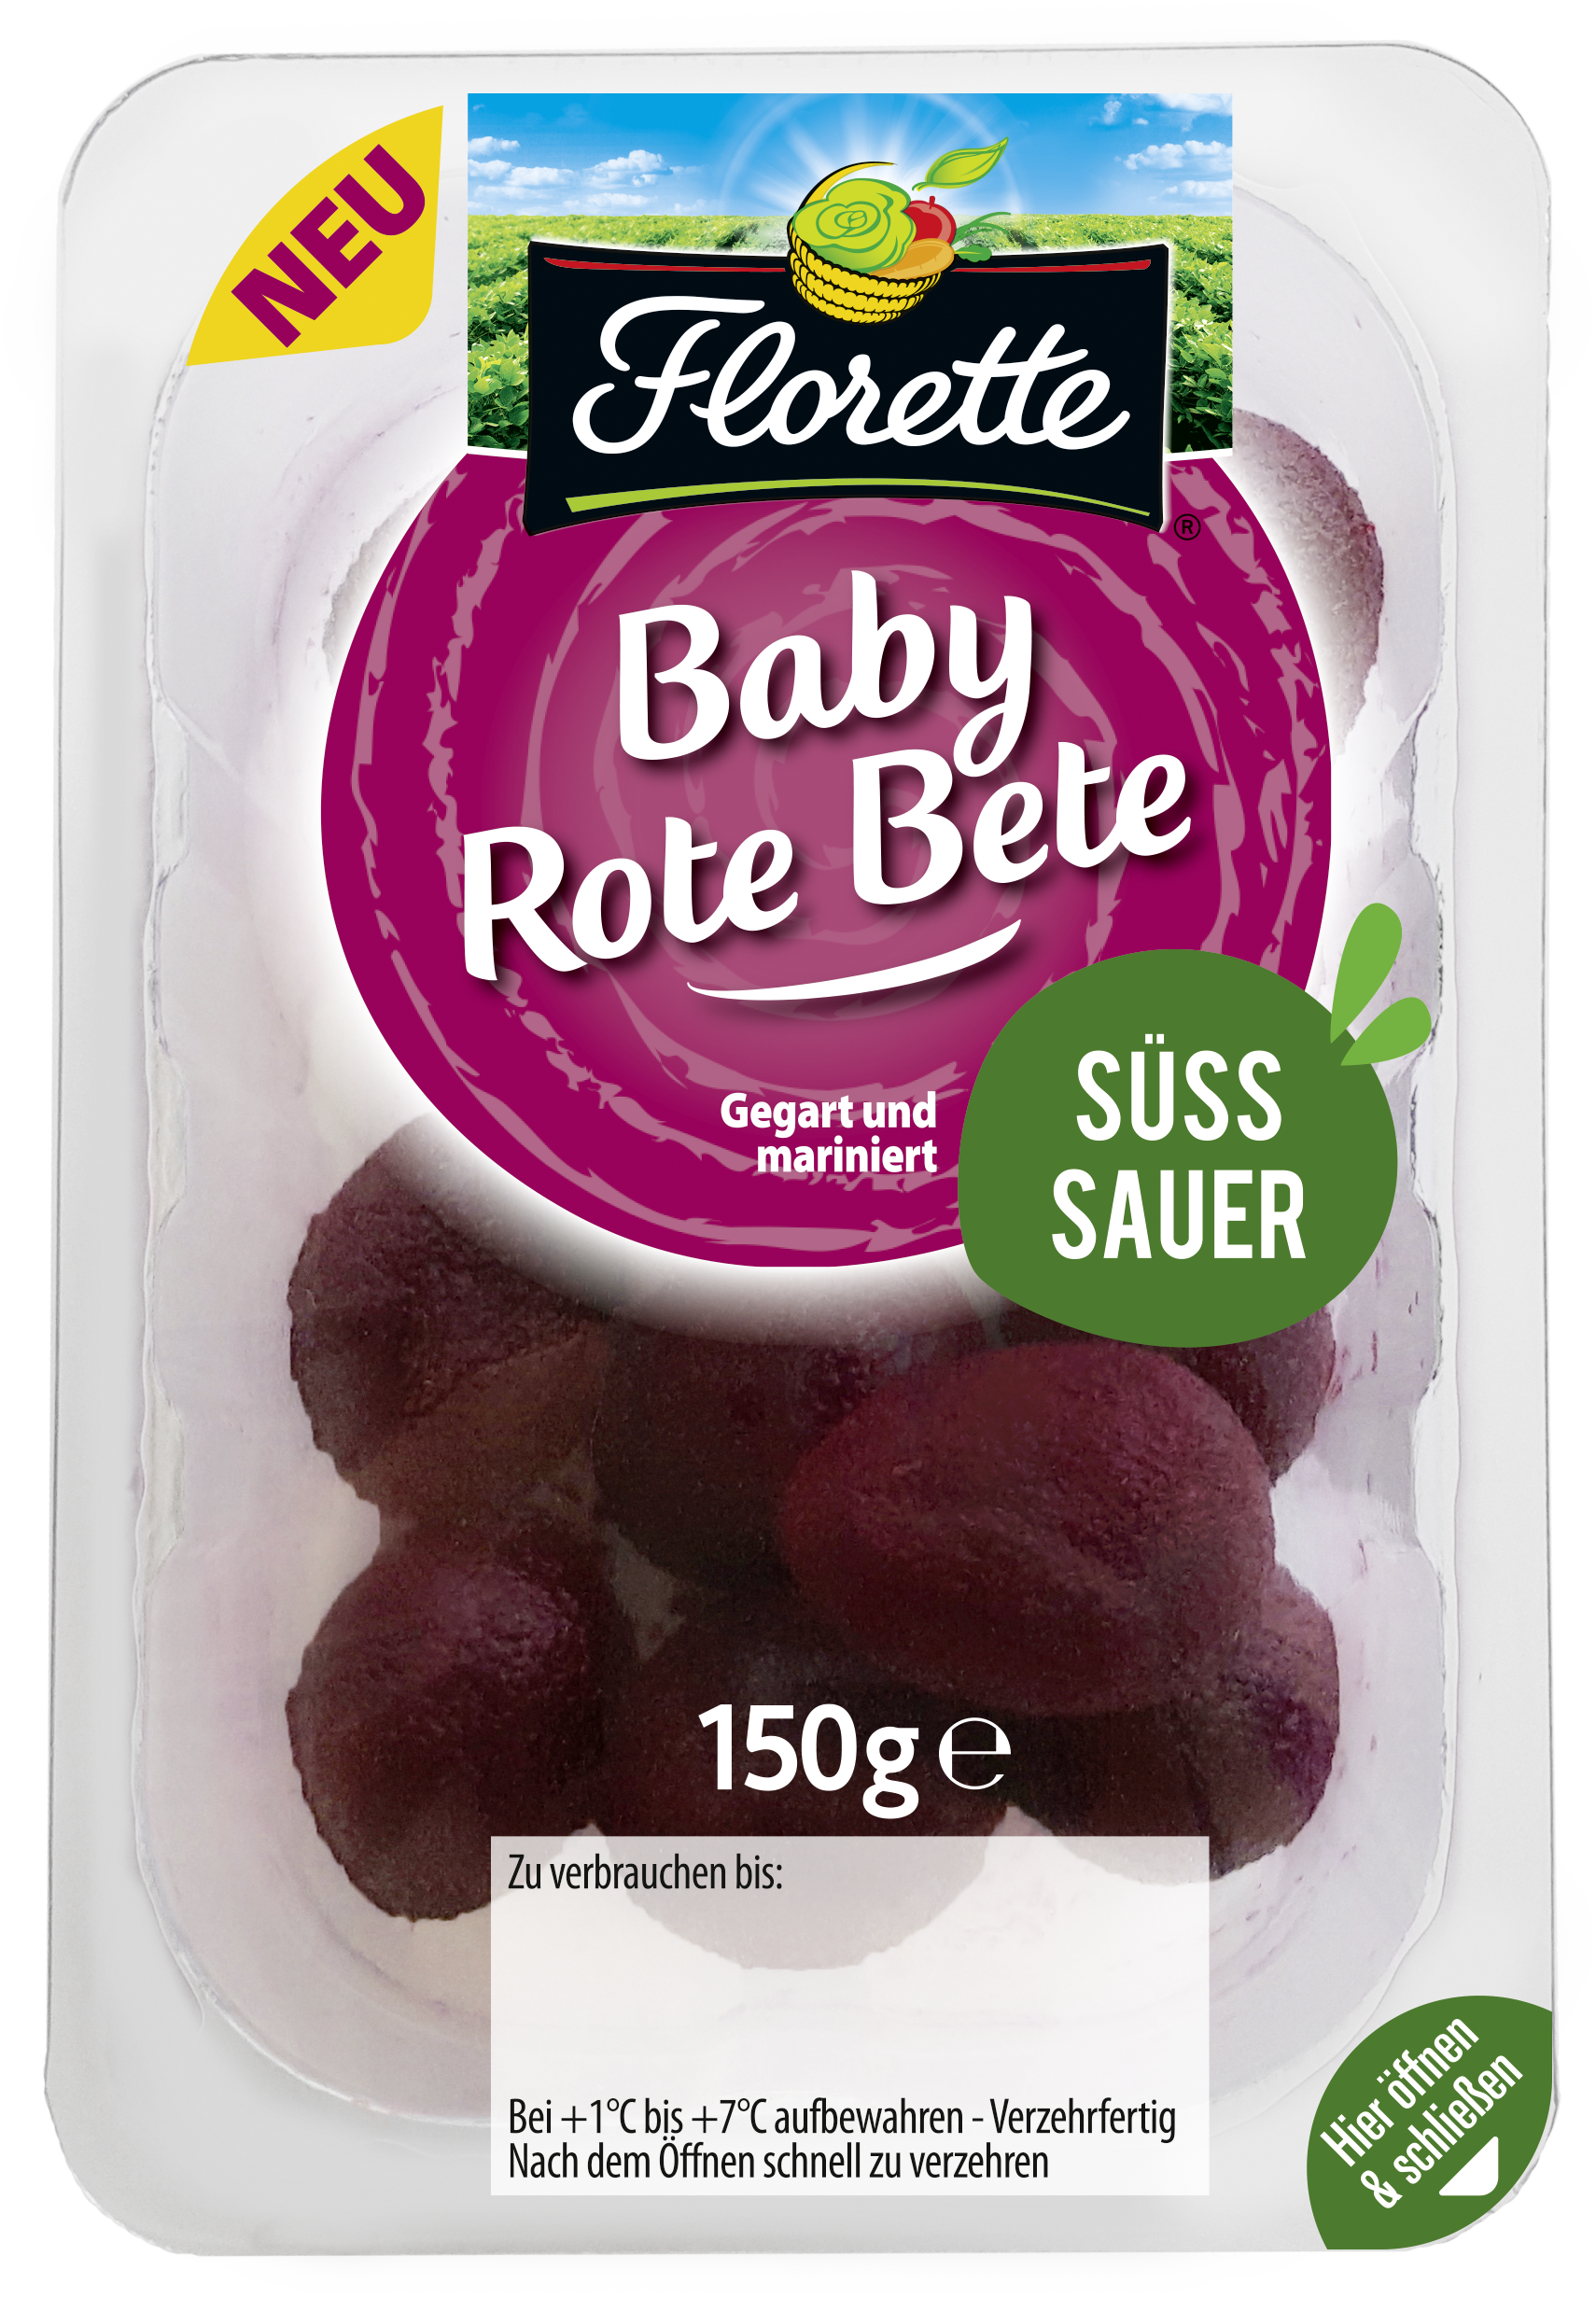 Baby Rote Bete SÜSS-SAUER HD